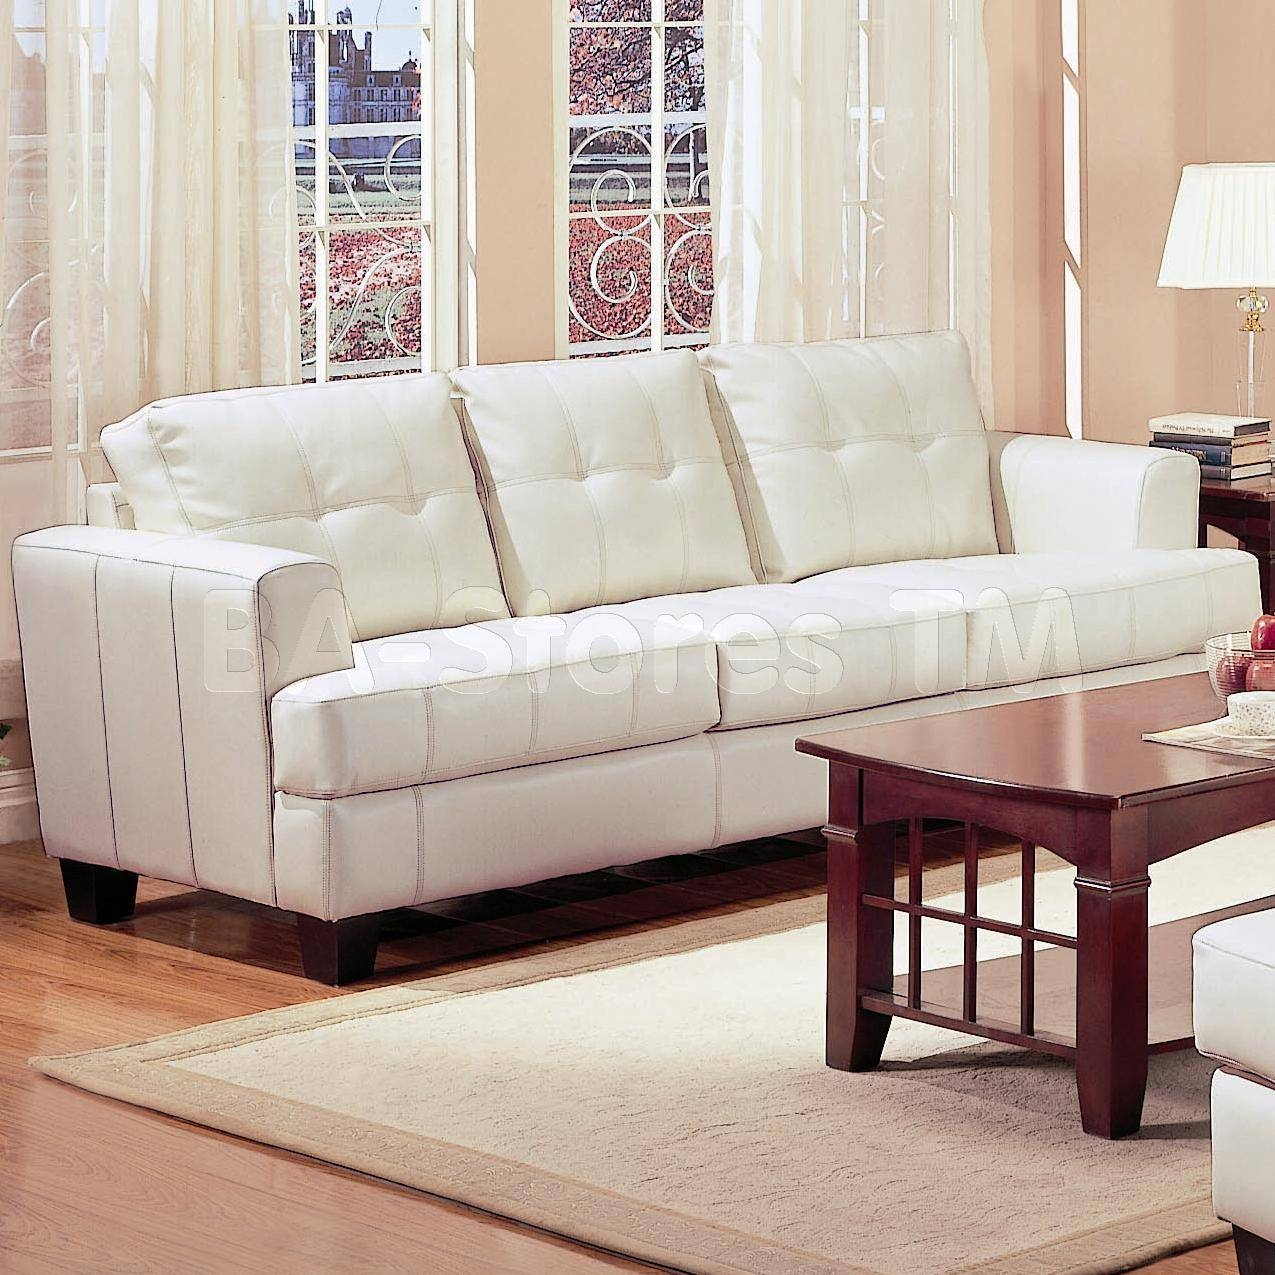 Samuel Contemporary Leather Sofa In White - Coaster Co. | Sofas for White Leather Sofas (Image 20 of 30)